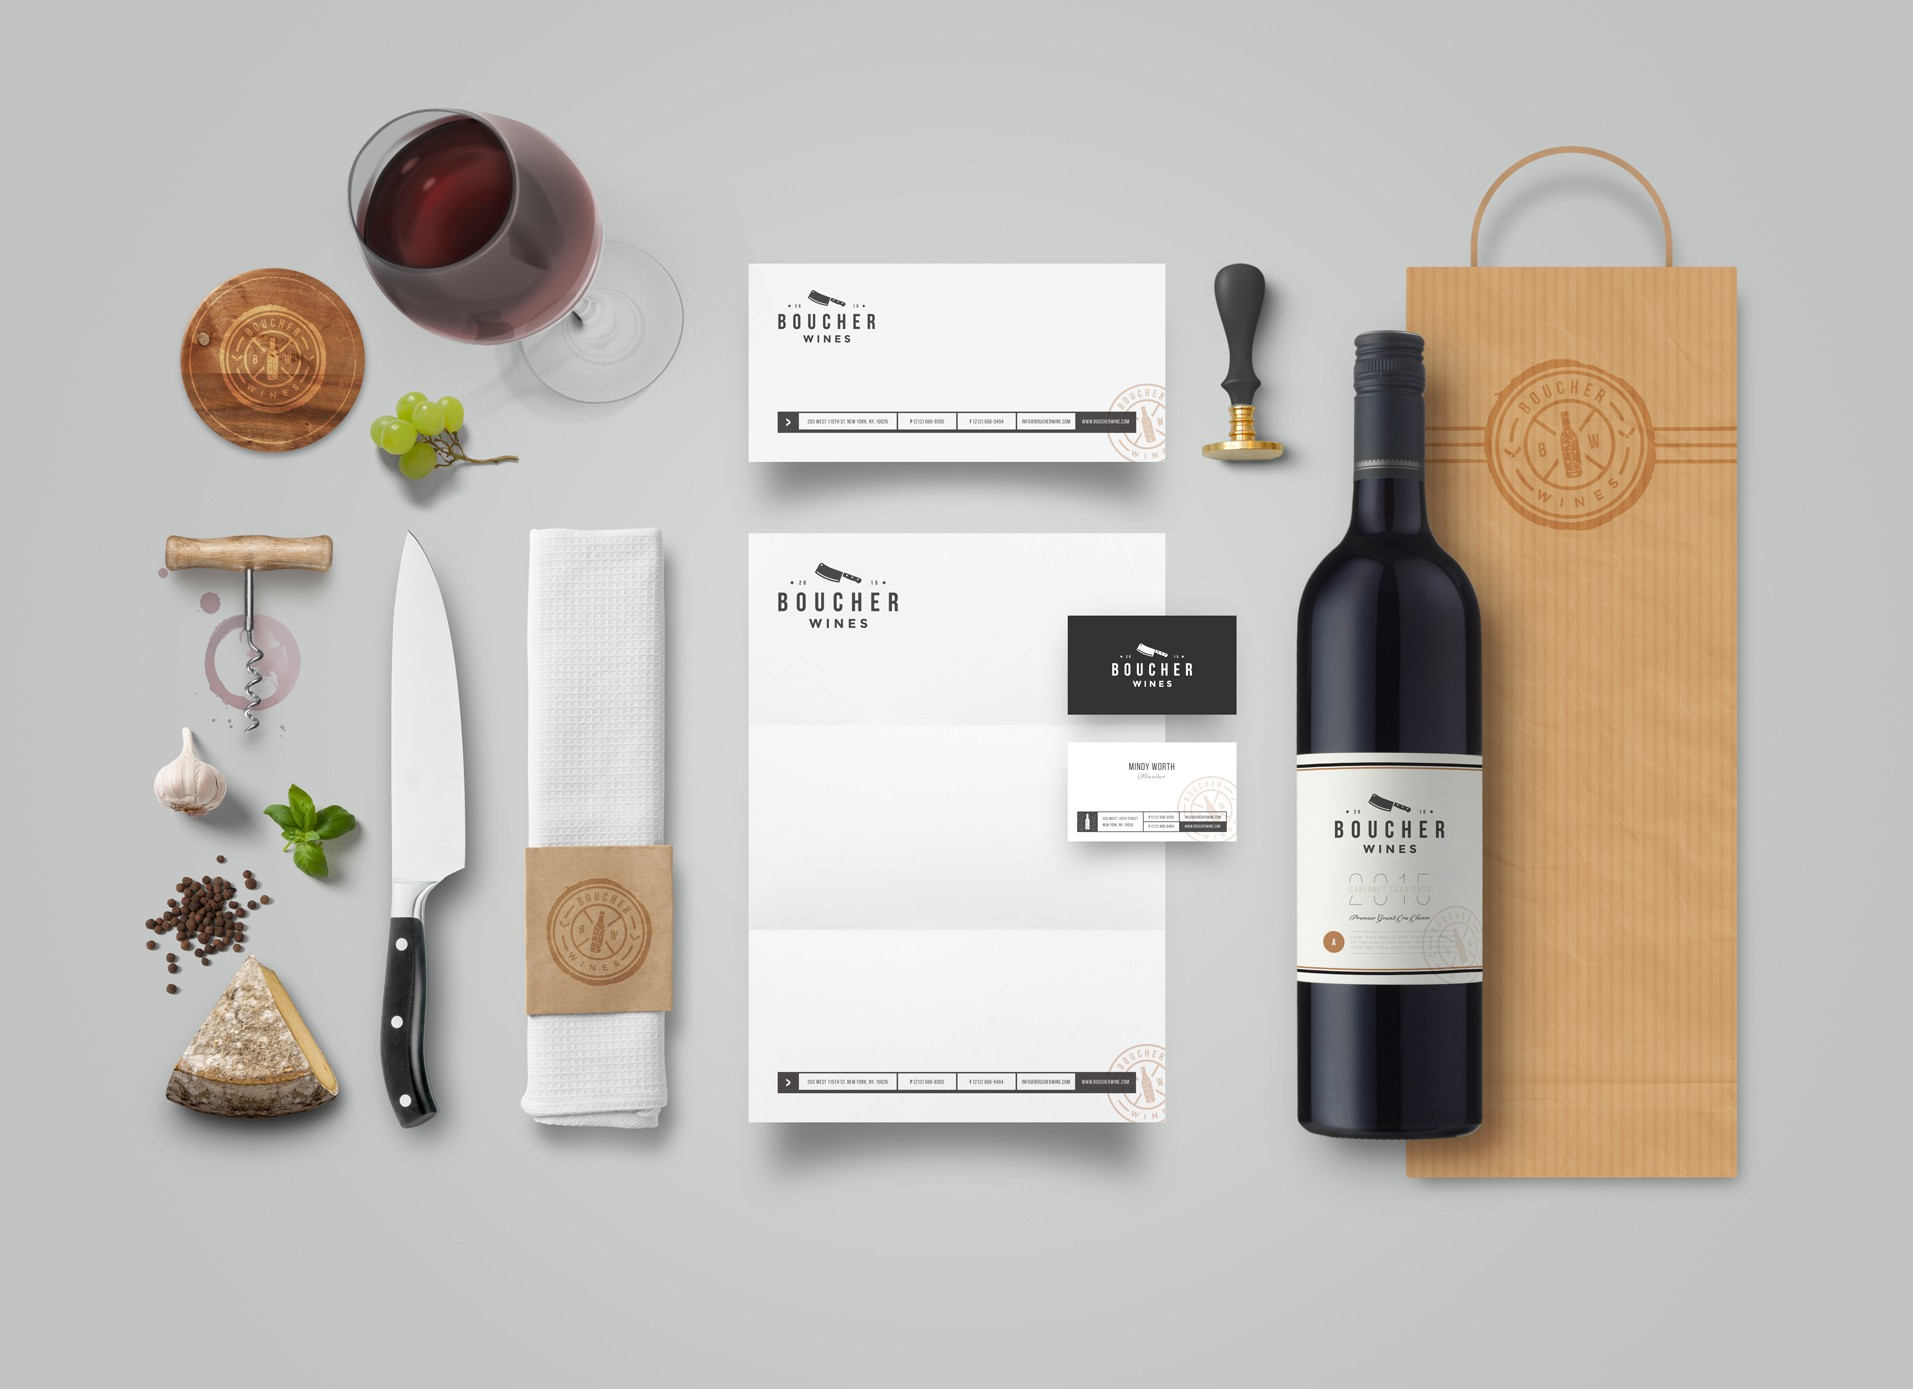 Create a hipster wine brand that encompass the passion and fun that is generated from food and wine